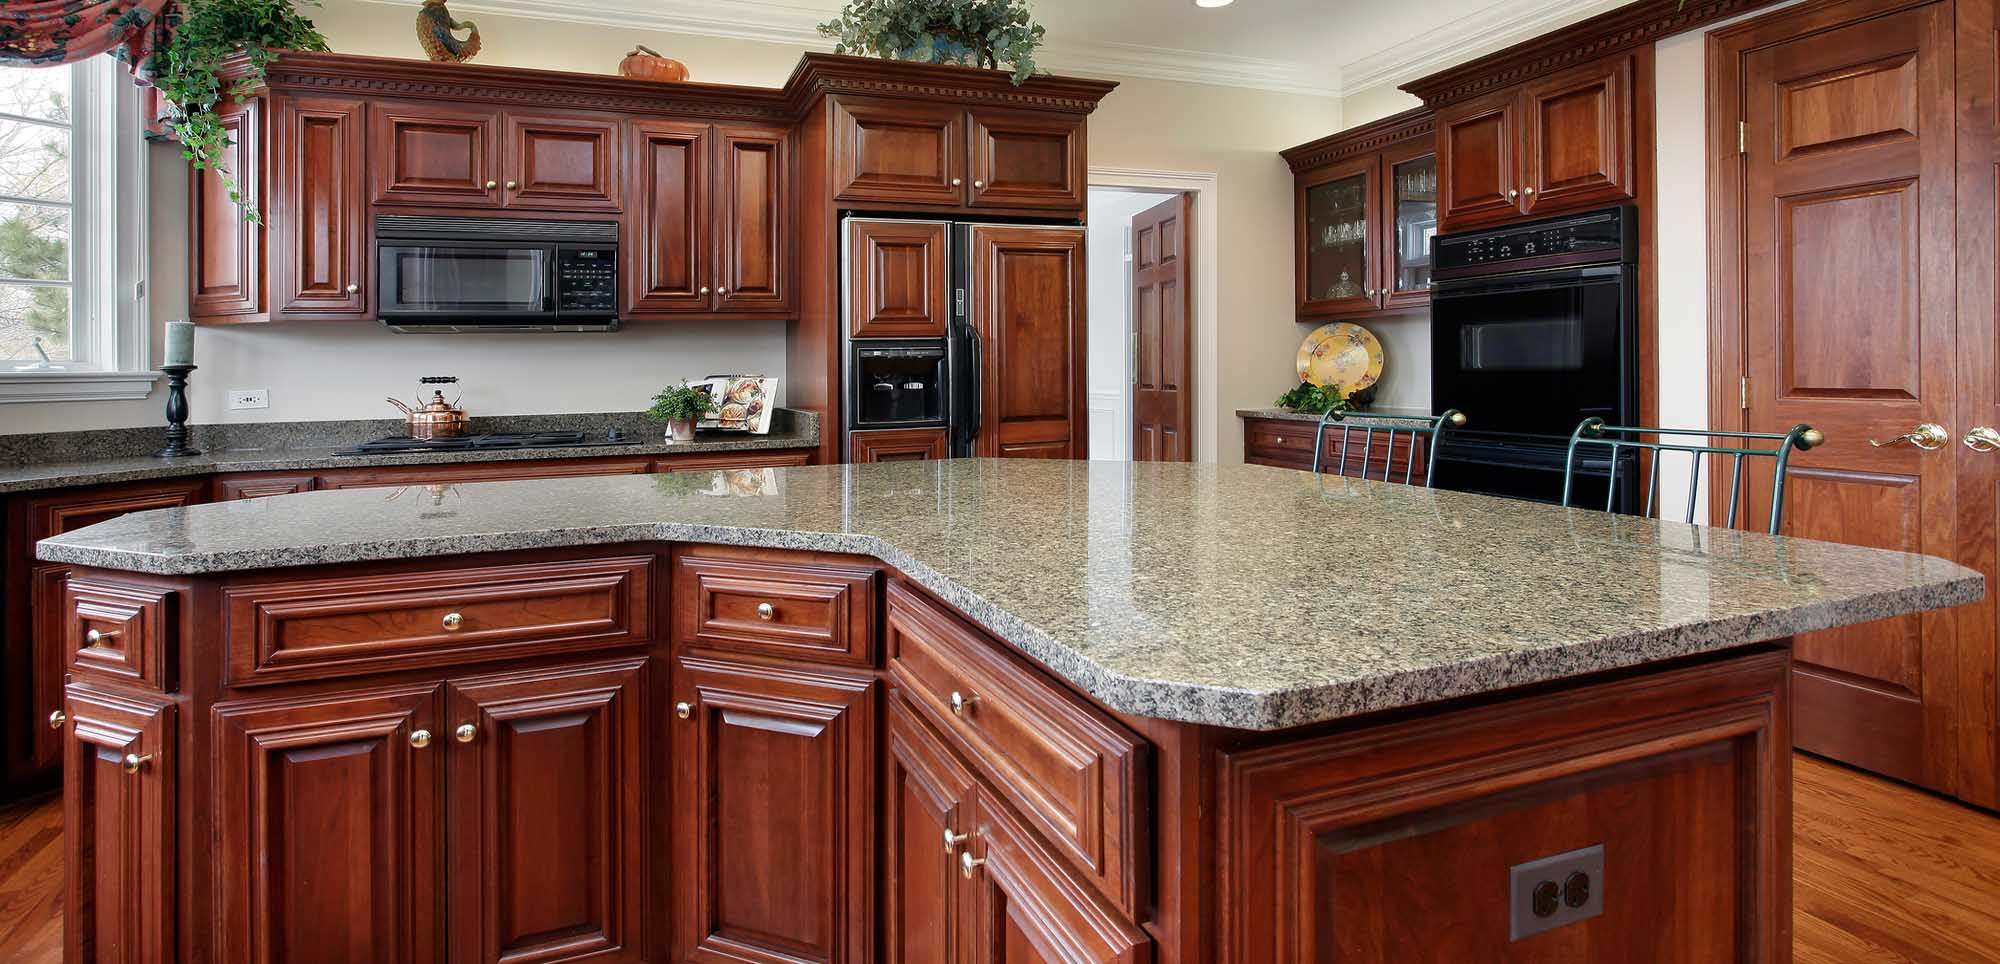 Kitchen Countertops Mission Viejo Ca